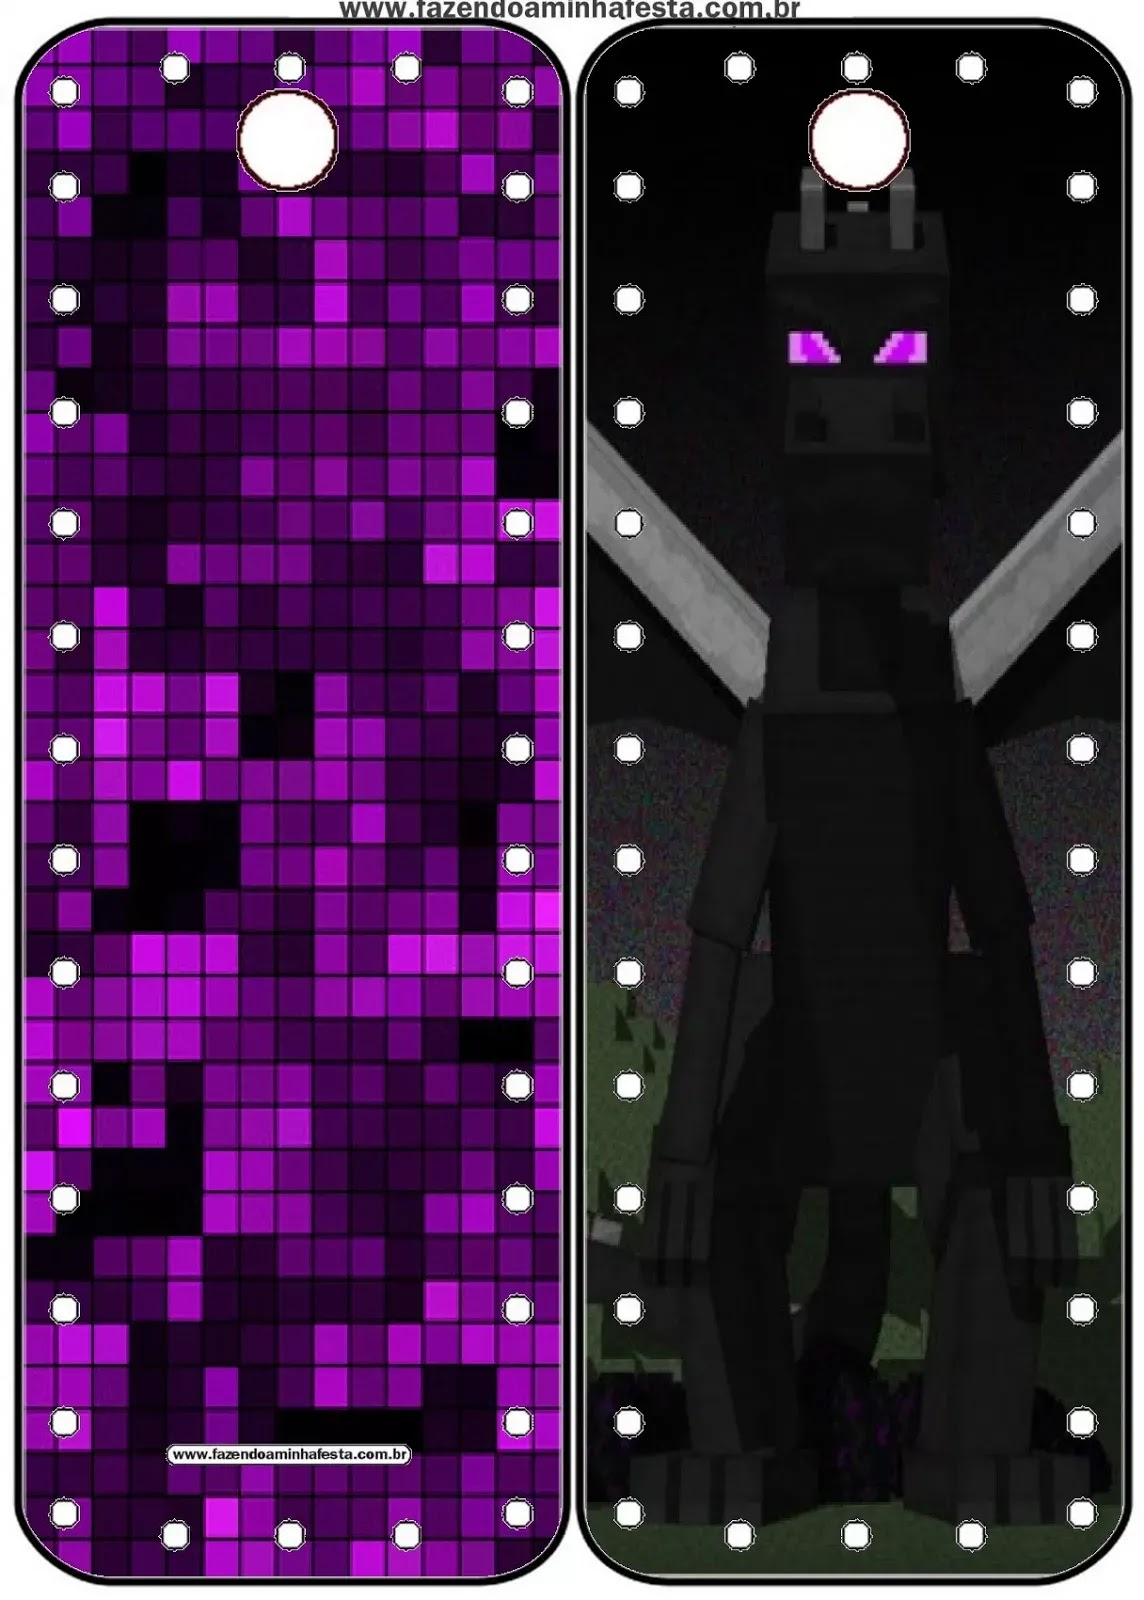 graphic about Minecraft Bookmarks Printable referred to as Pixel Gum 3D, Roblox and Minecraft Cost-free Celebration Printables